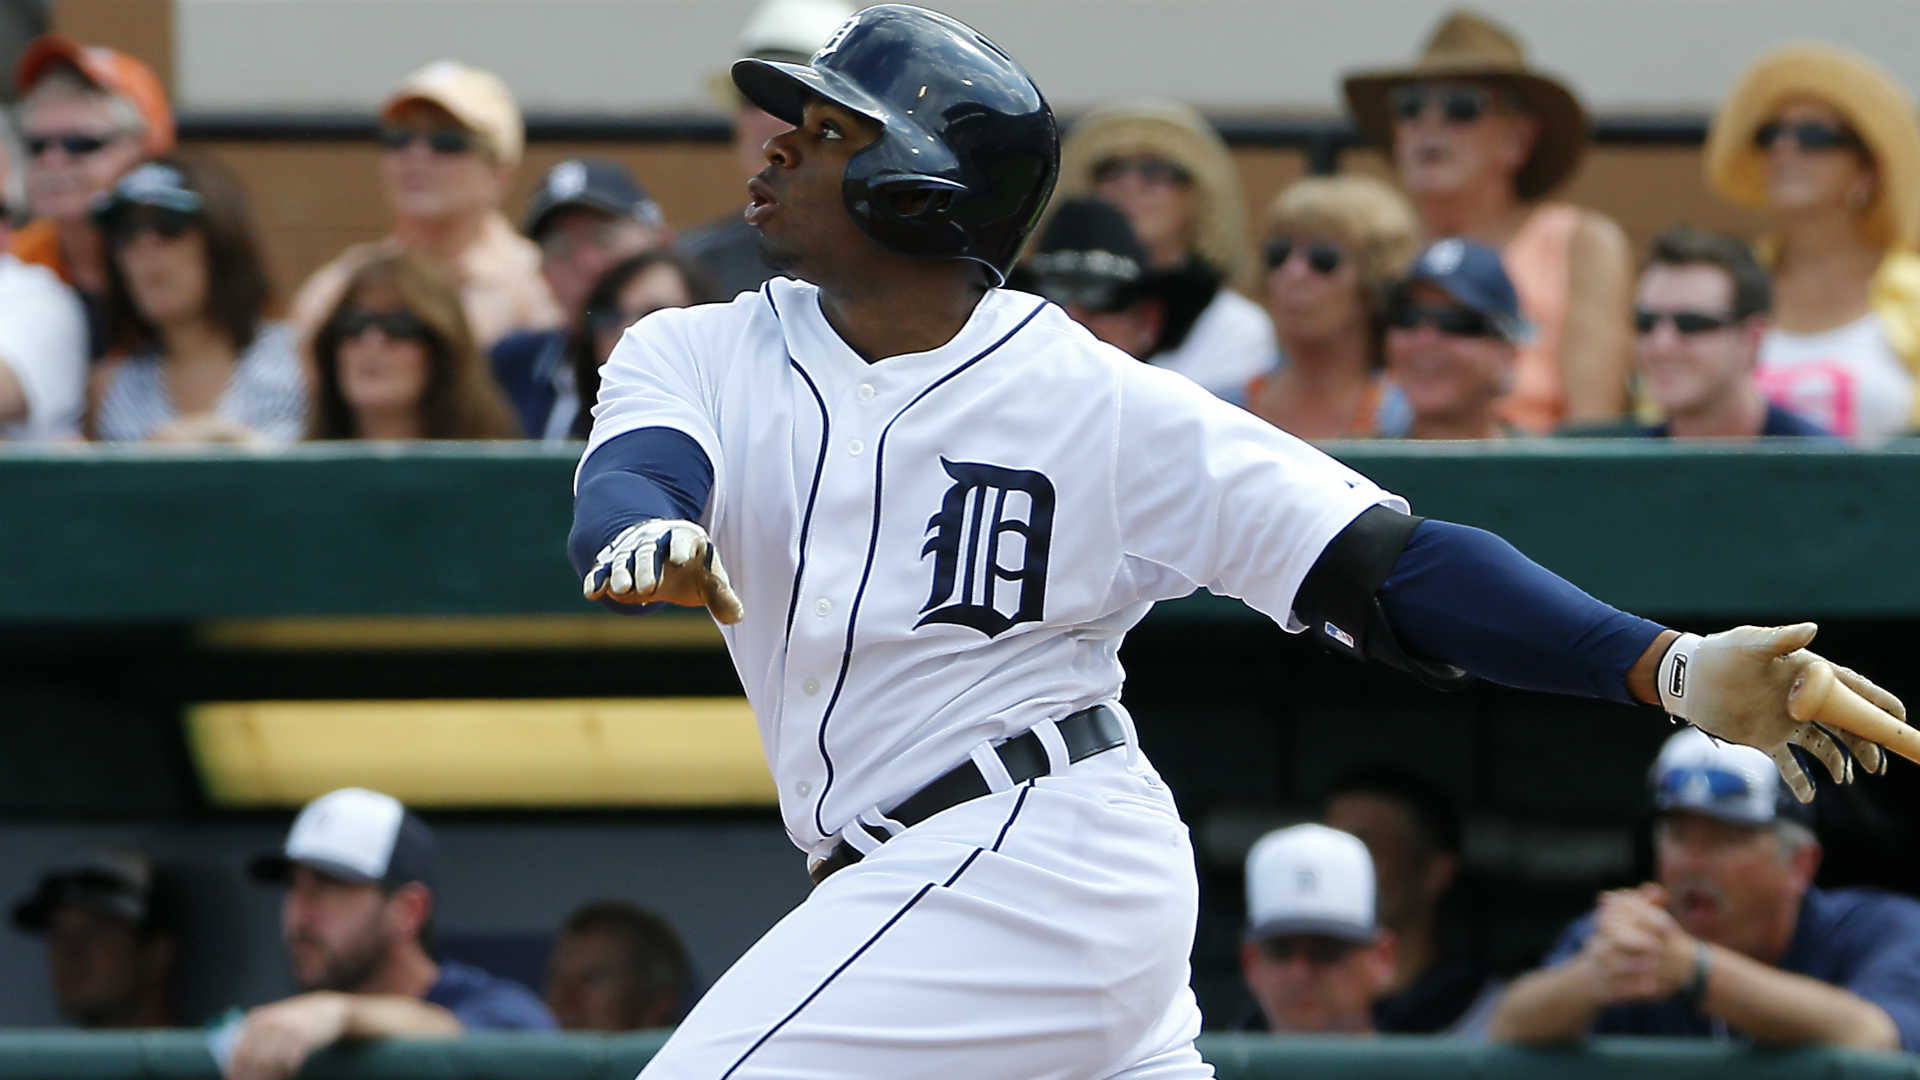 Tigers' Dirks needs back surgery; Rajai Davis wins again